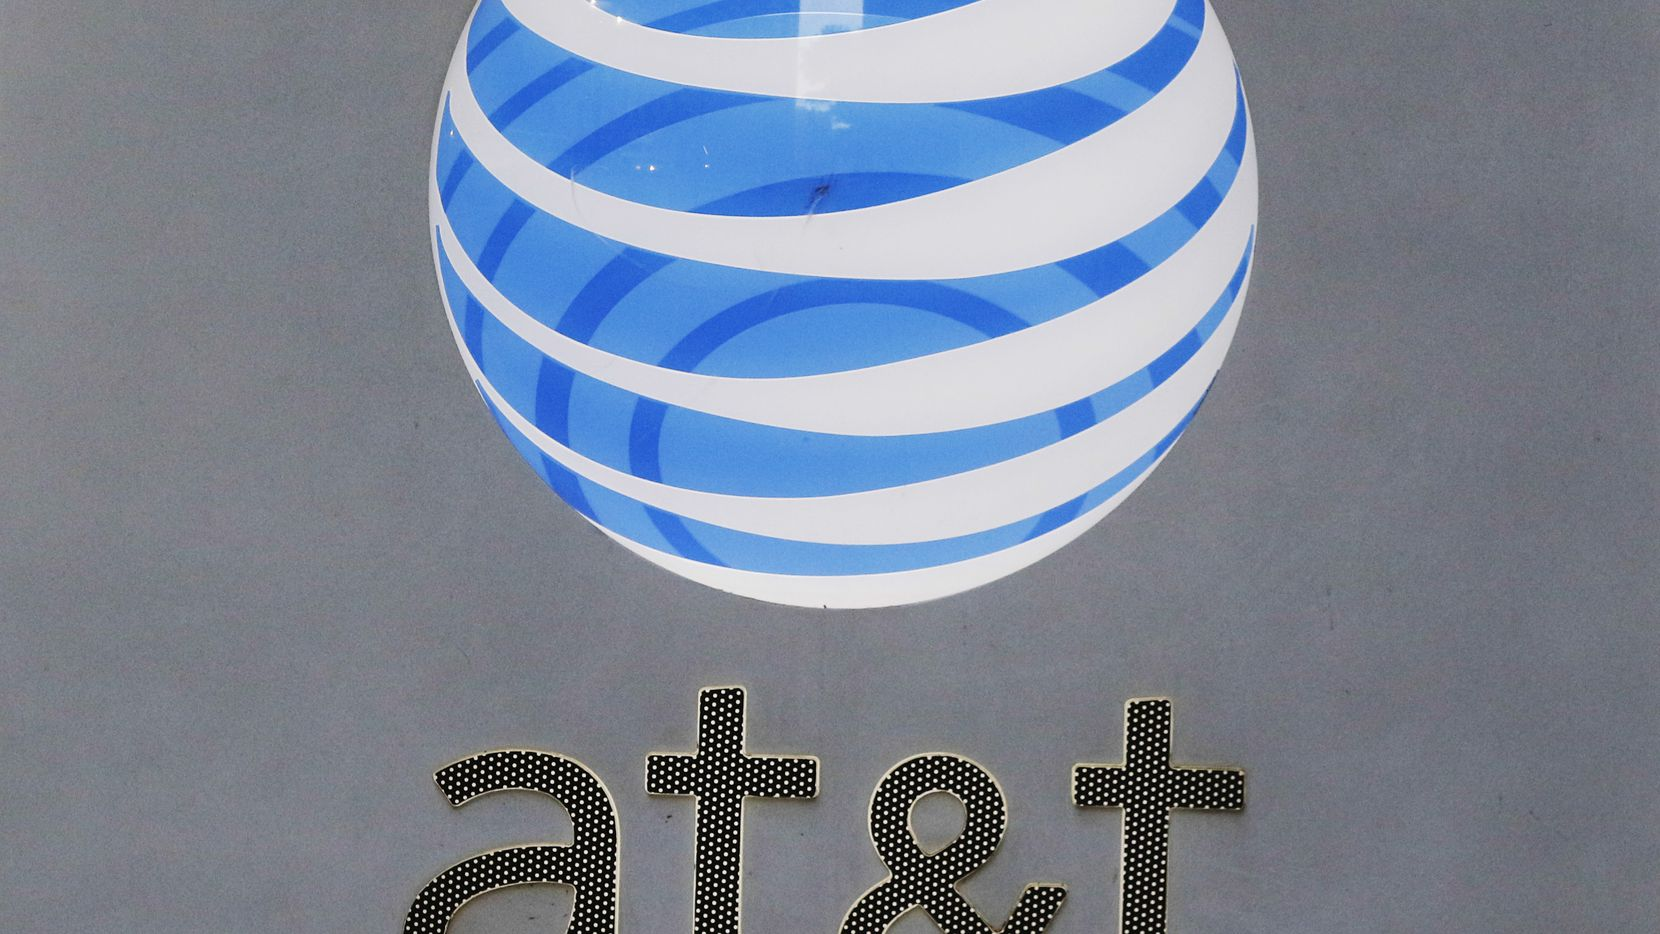 AT&T signage at its corporate headquarters in downtown Dallas. (David Woo/The Dallas Morning News)